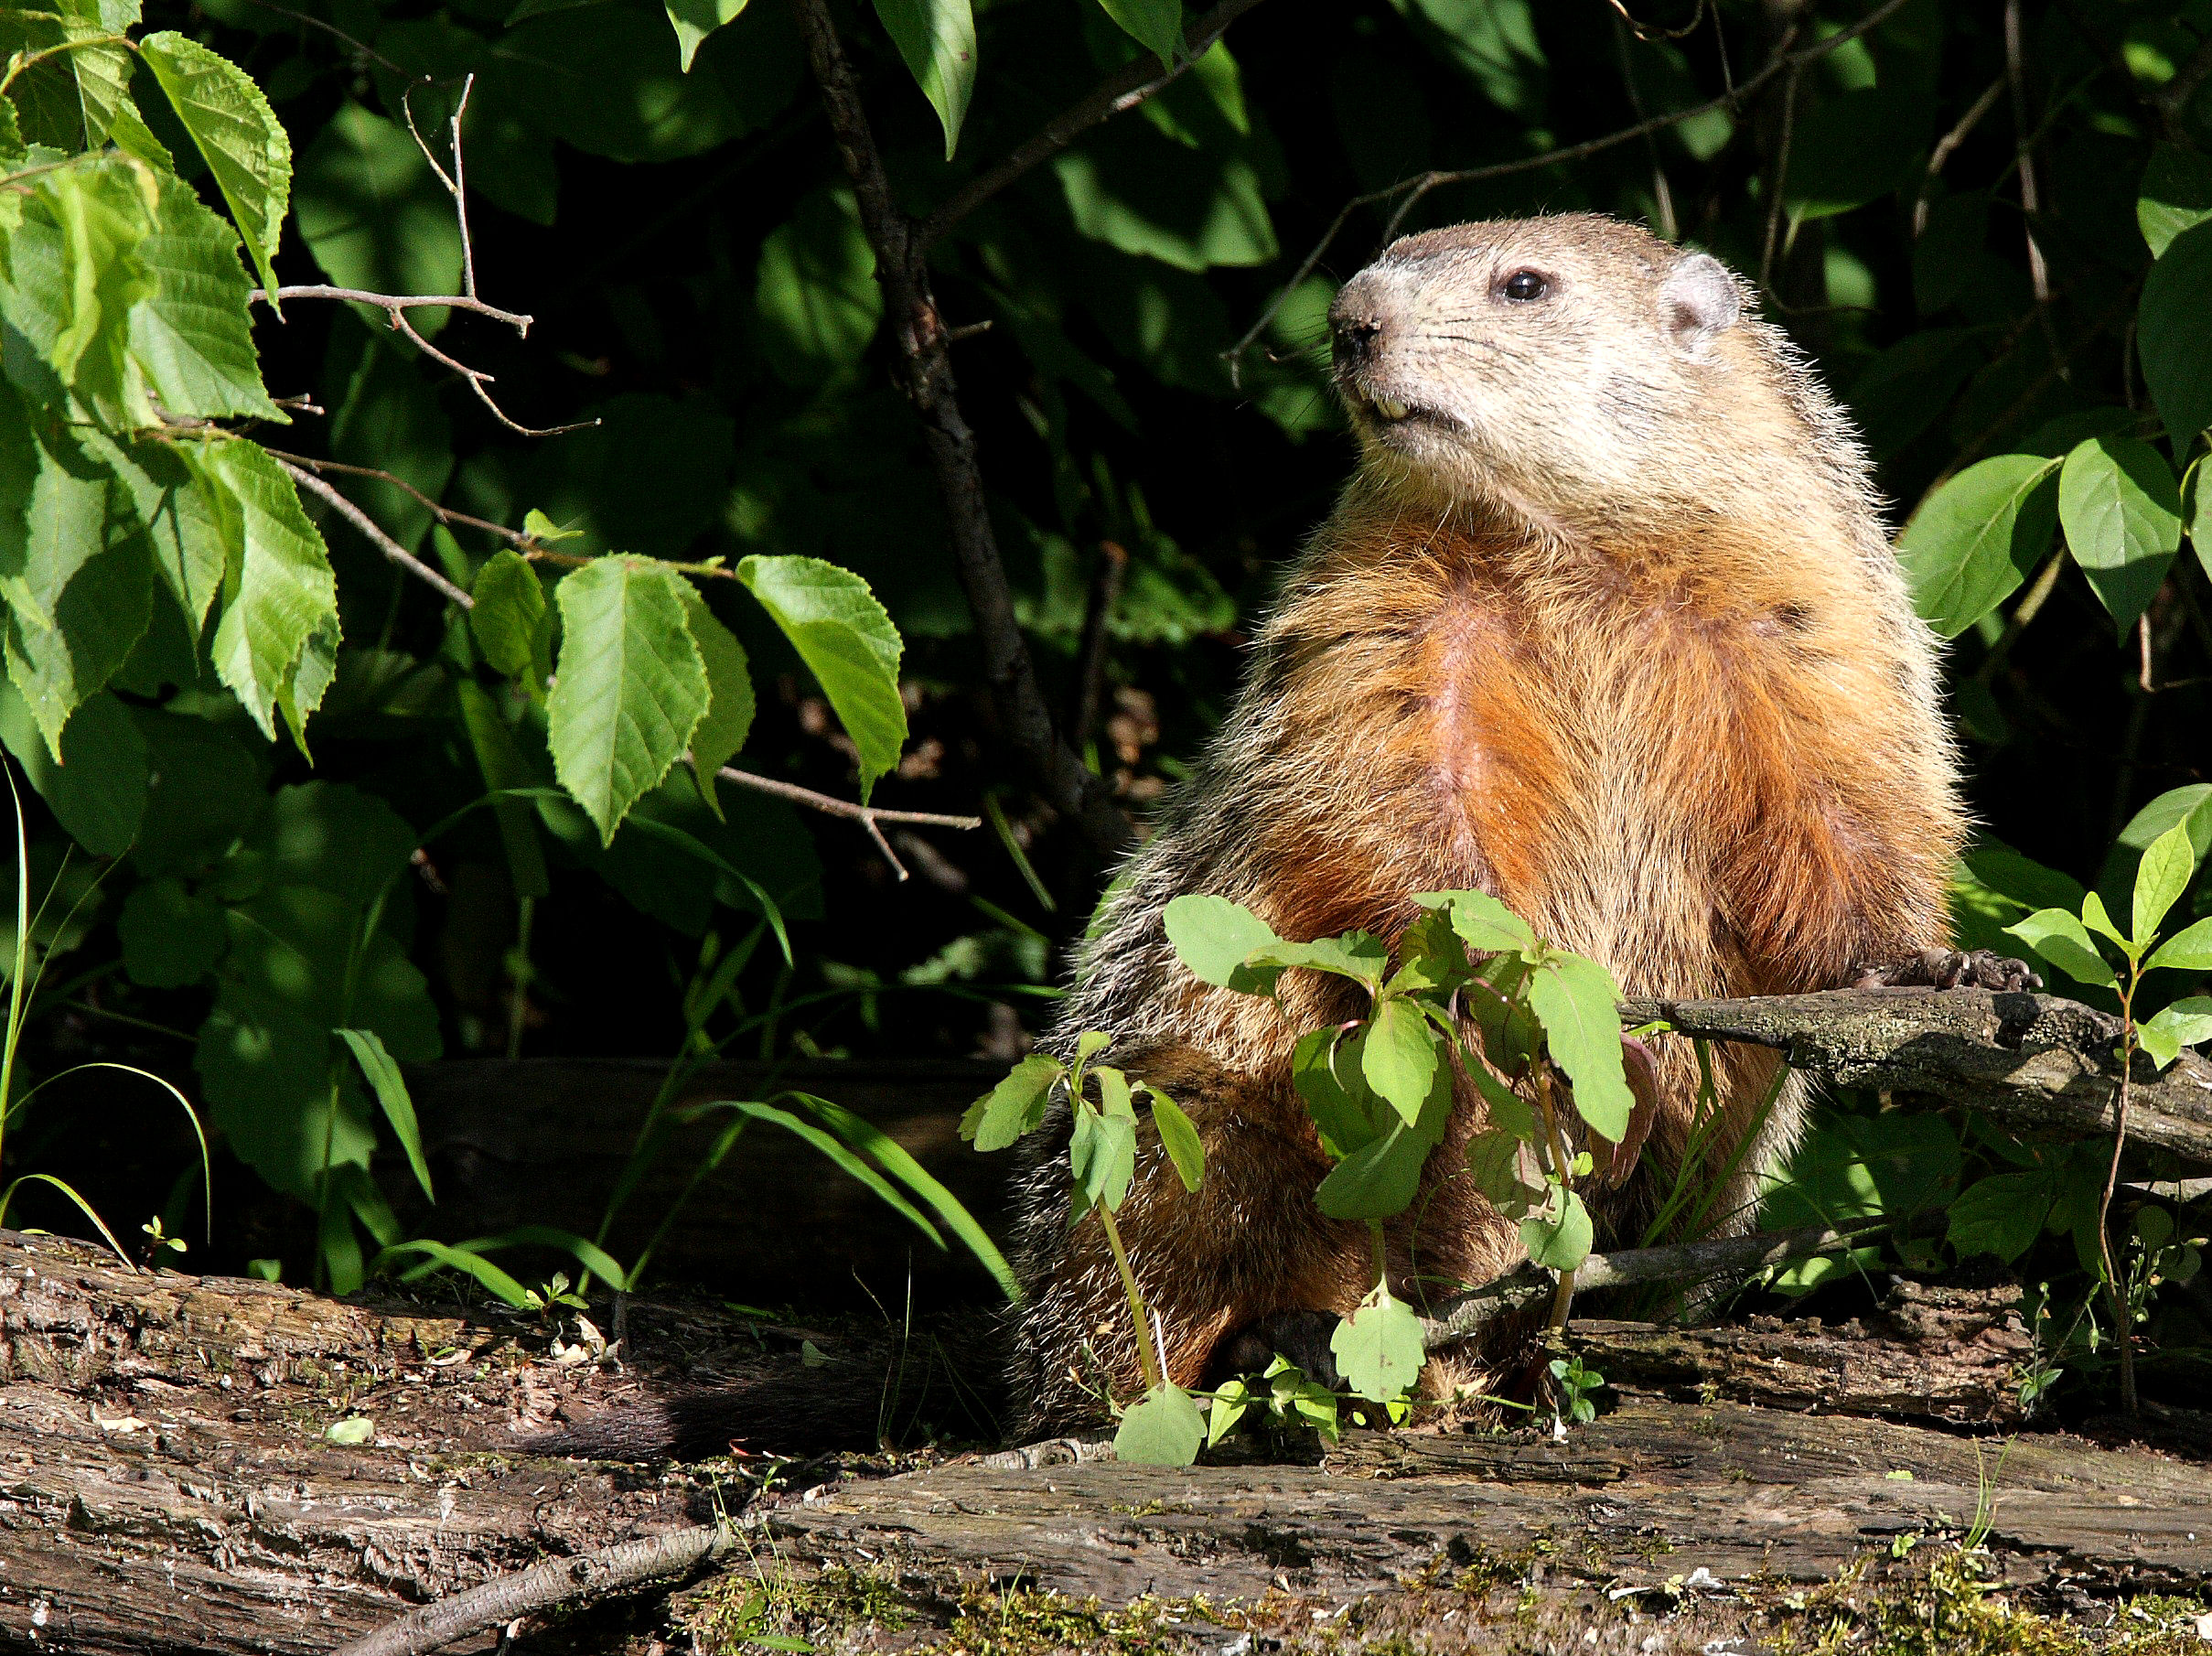 How To Deal With Problem Woodchuck In New York